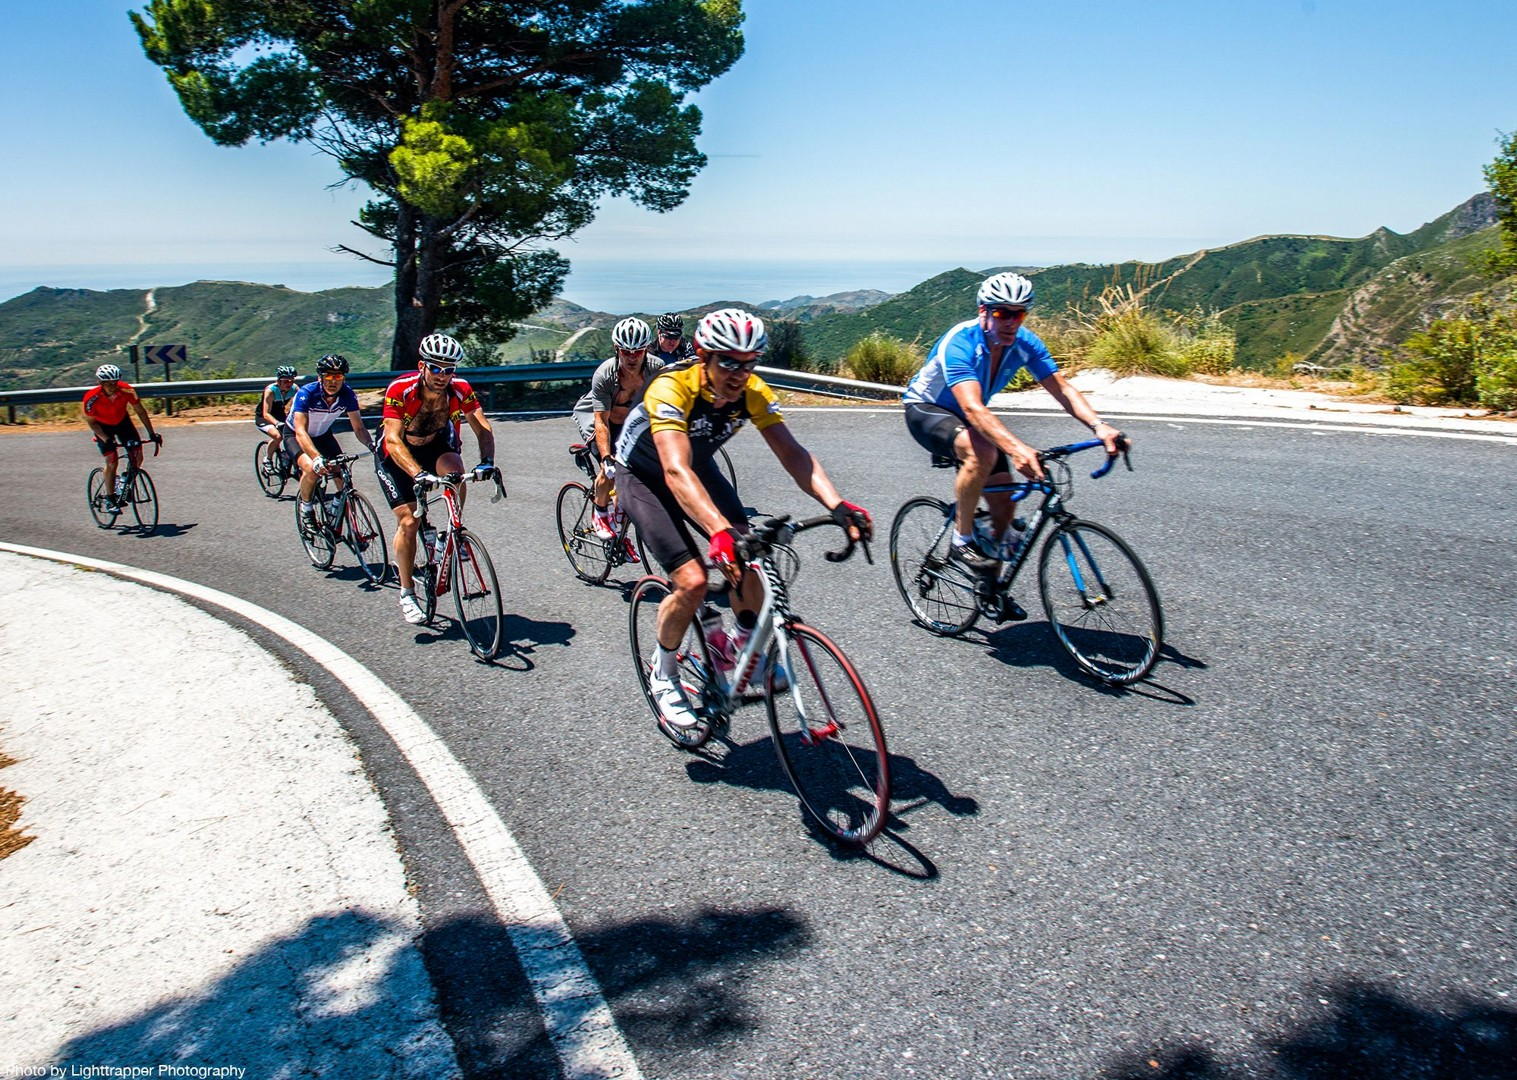 group-guided-cycling-holiday-road-tour-in-spain-saddle-skedaddle.jpg - Southern Spain - Sierra Nevada and Granada - Guided Road Cycling Holiday - Road Cycling